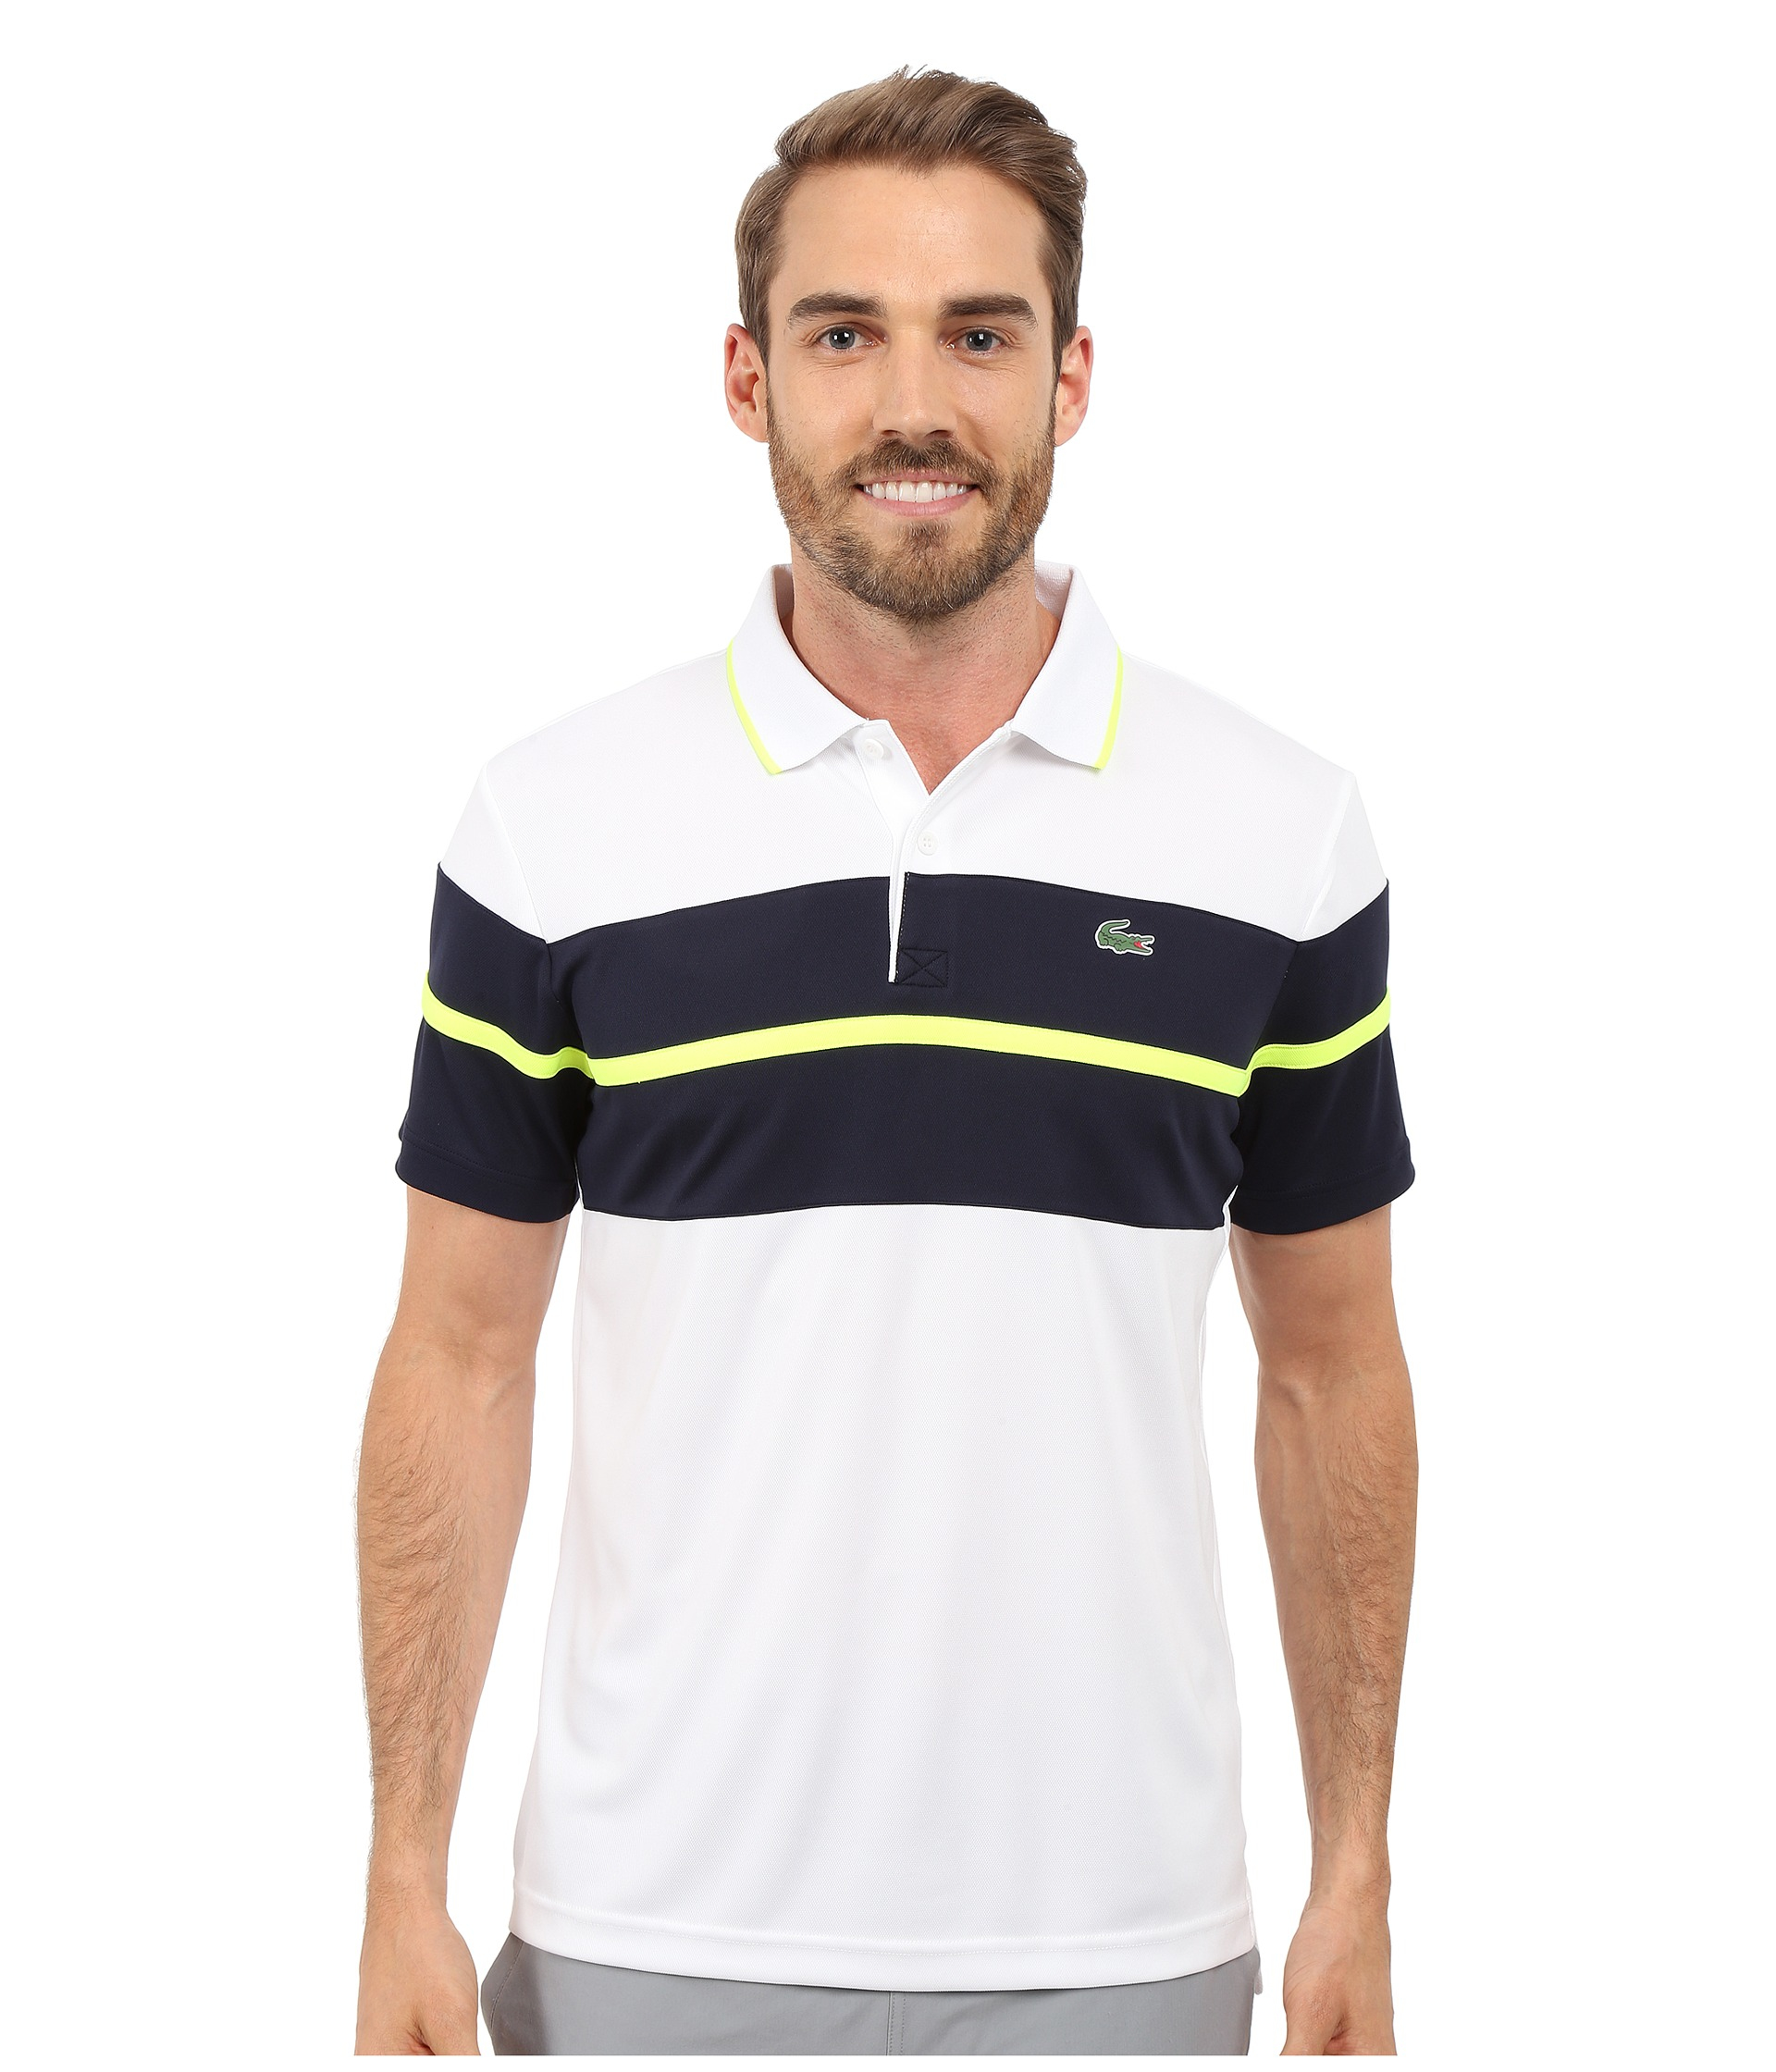 c98b5a50a pas cher polo lacoste sport ultra dry - Achat